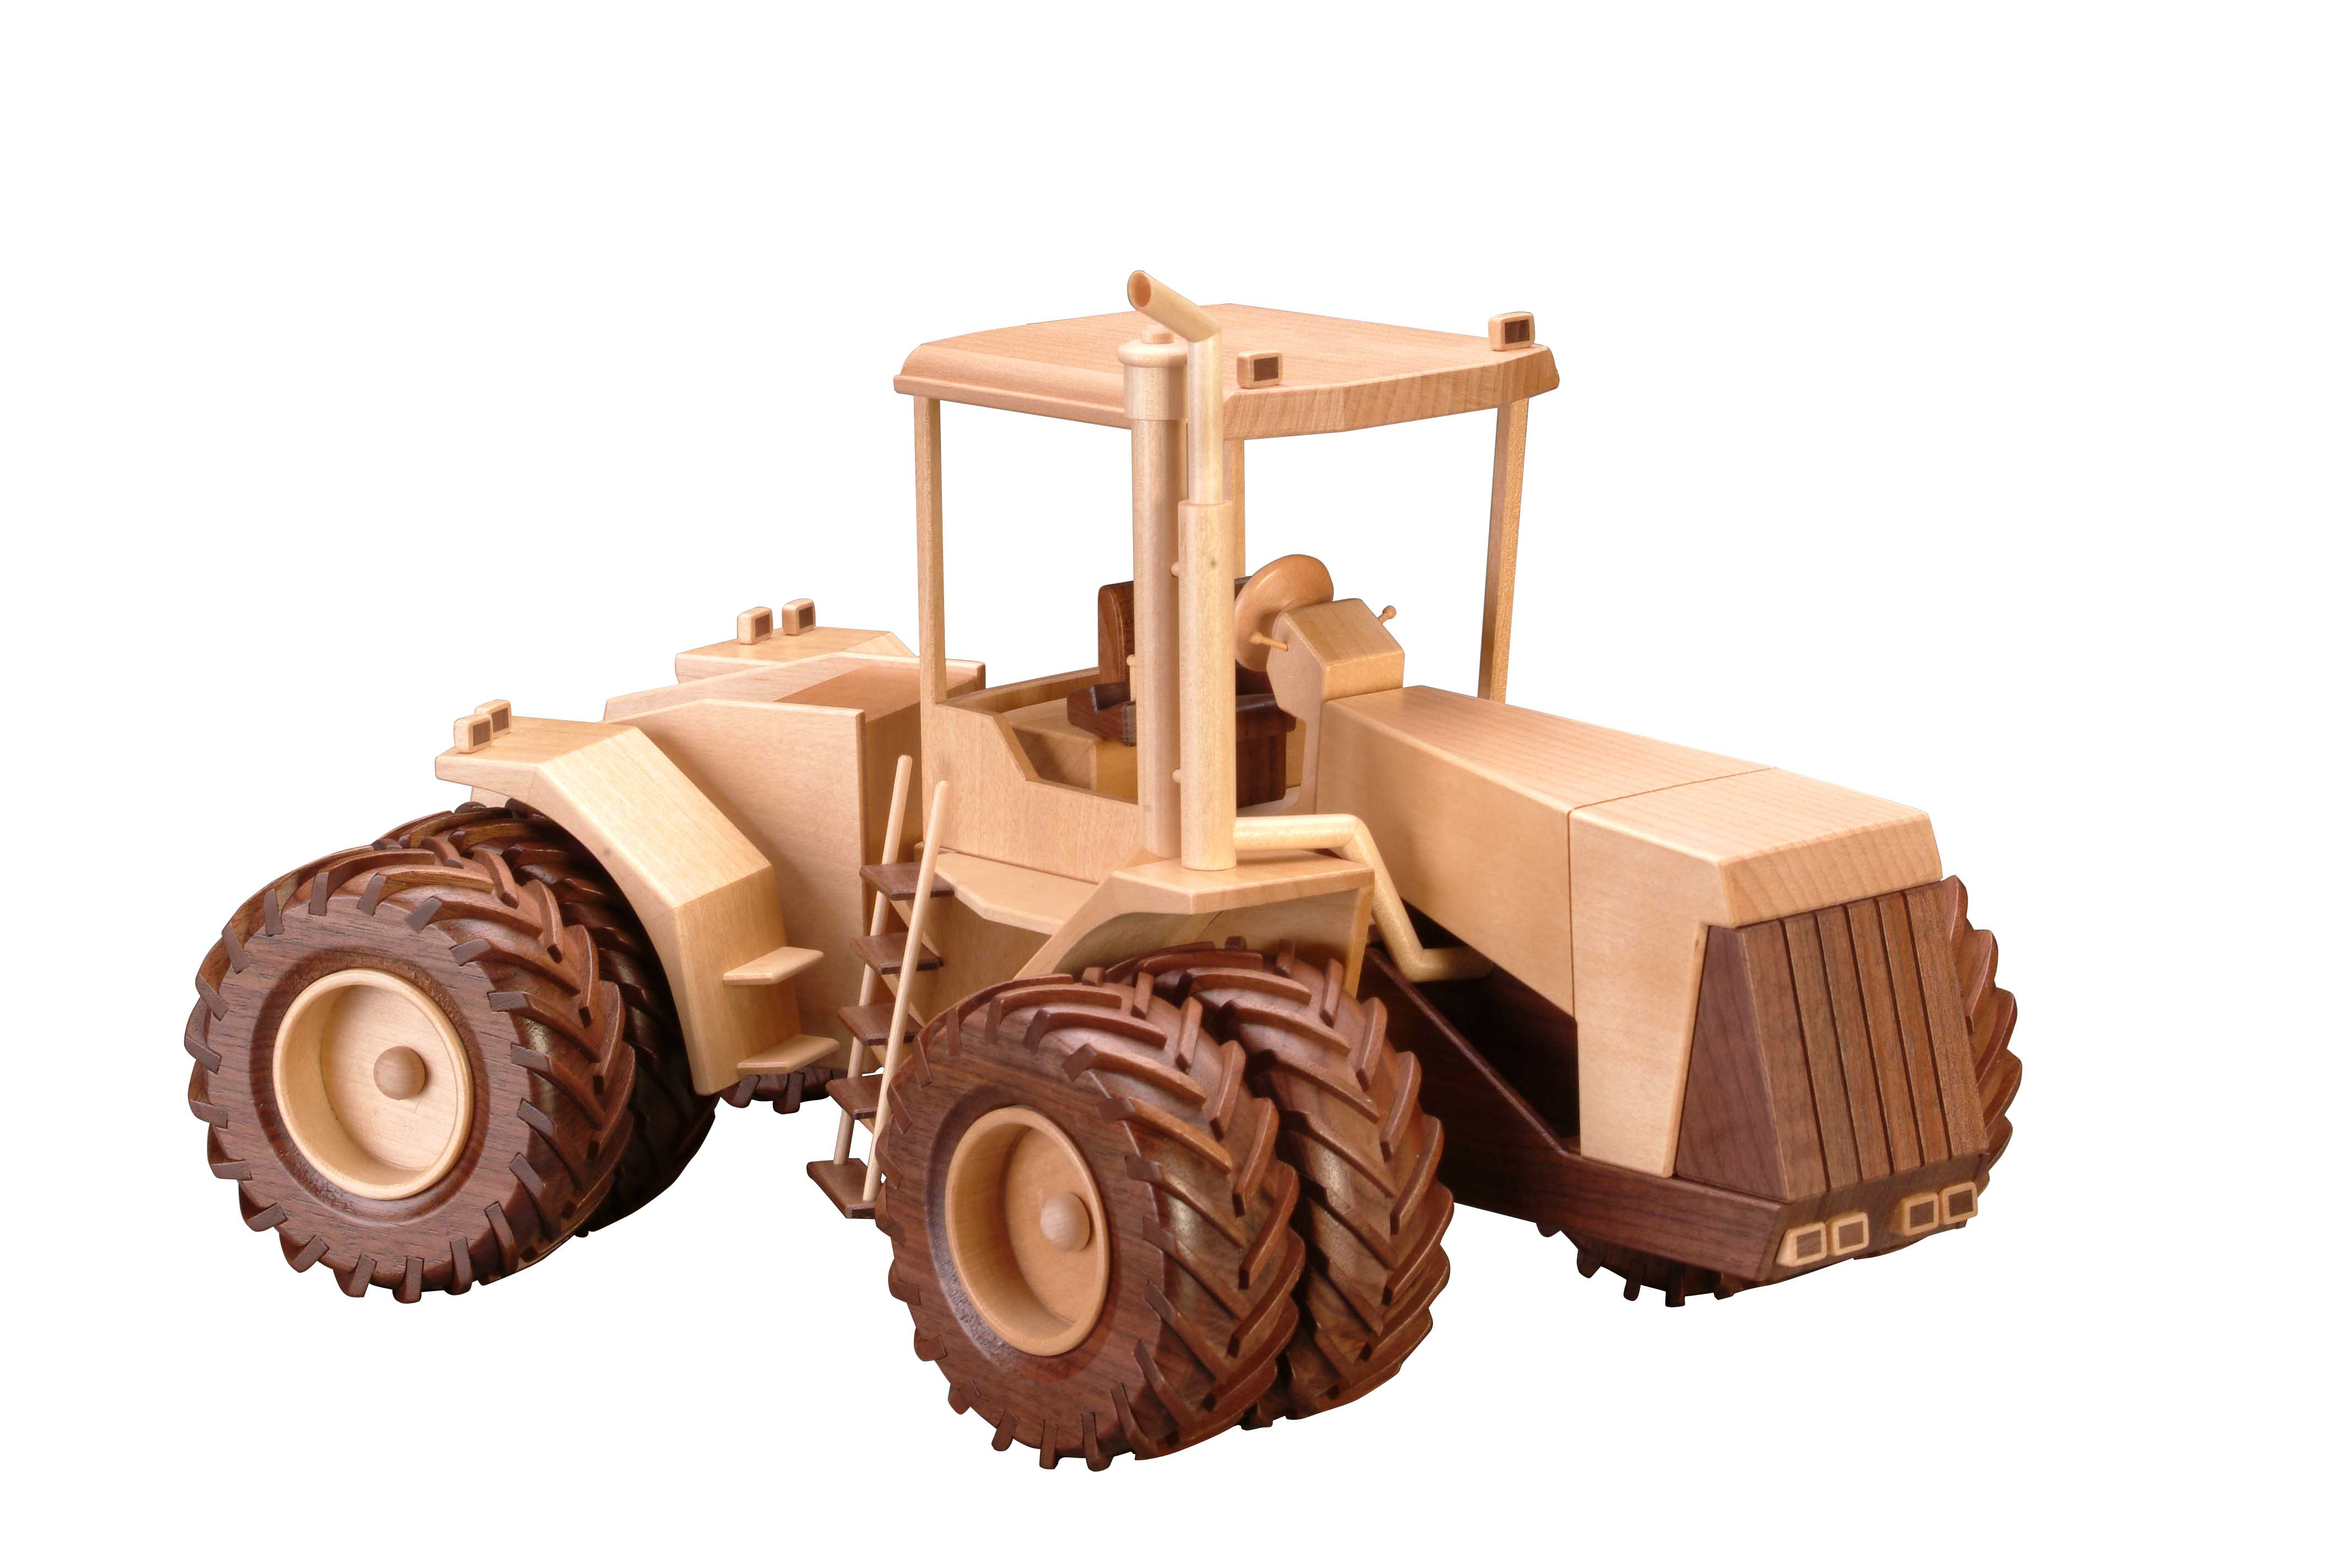 Articulated Tractor Toys And Joys : Patterns kits miscellaneous articulated tractor